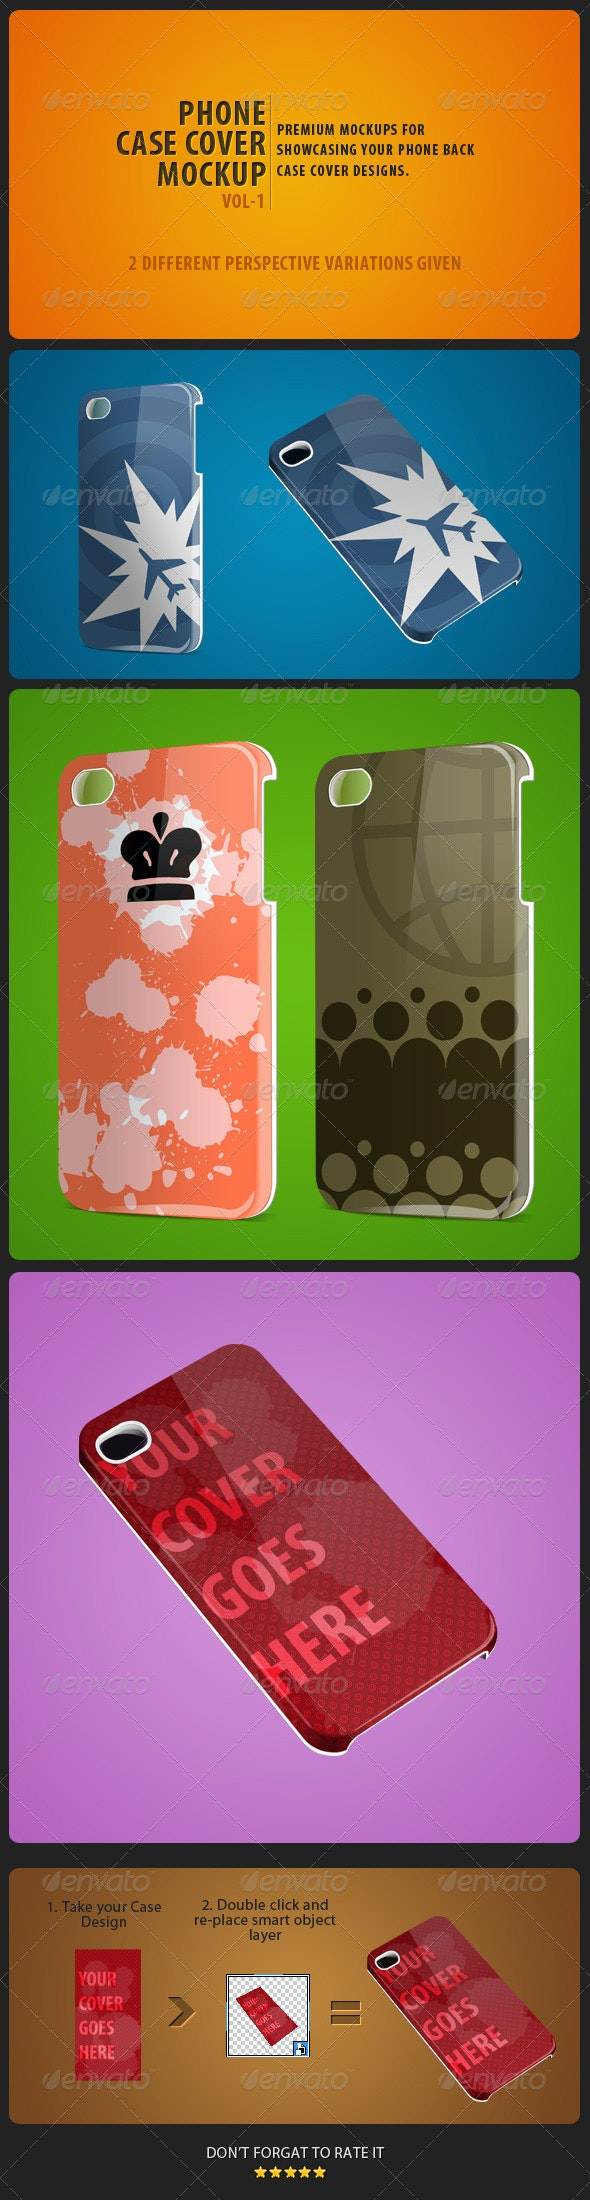 Phone Case Cover Mockup pack Vol-1 - Miscellaneous Apparel